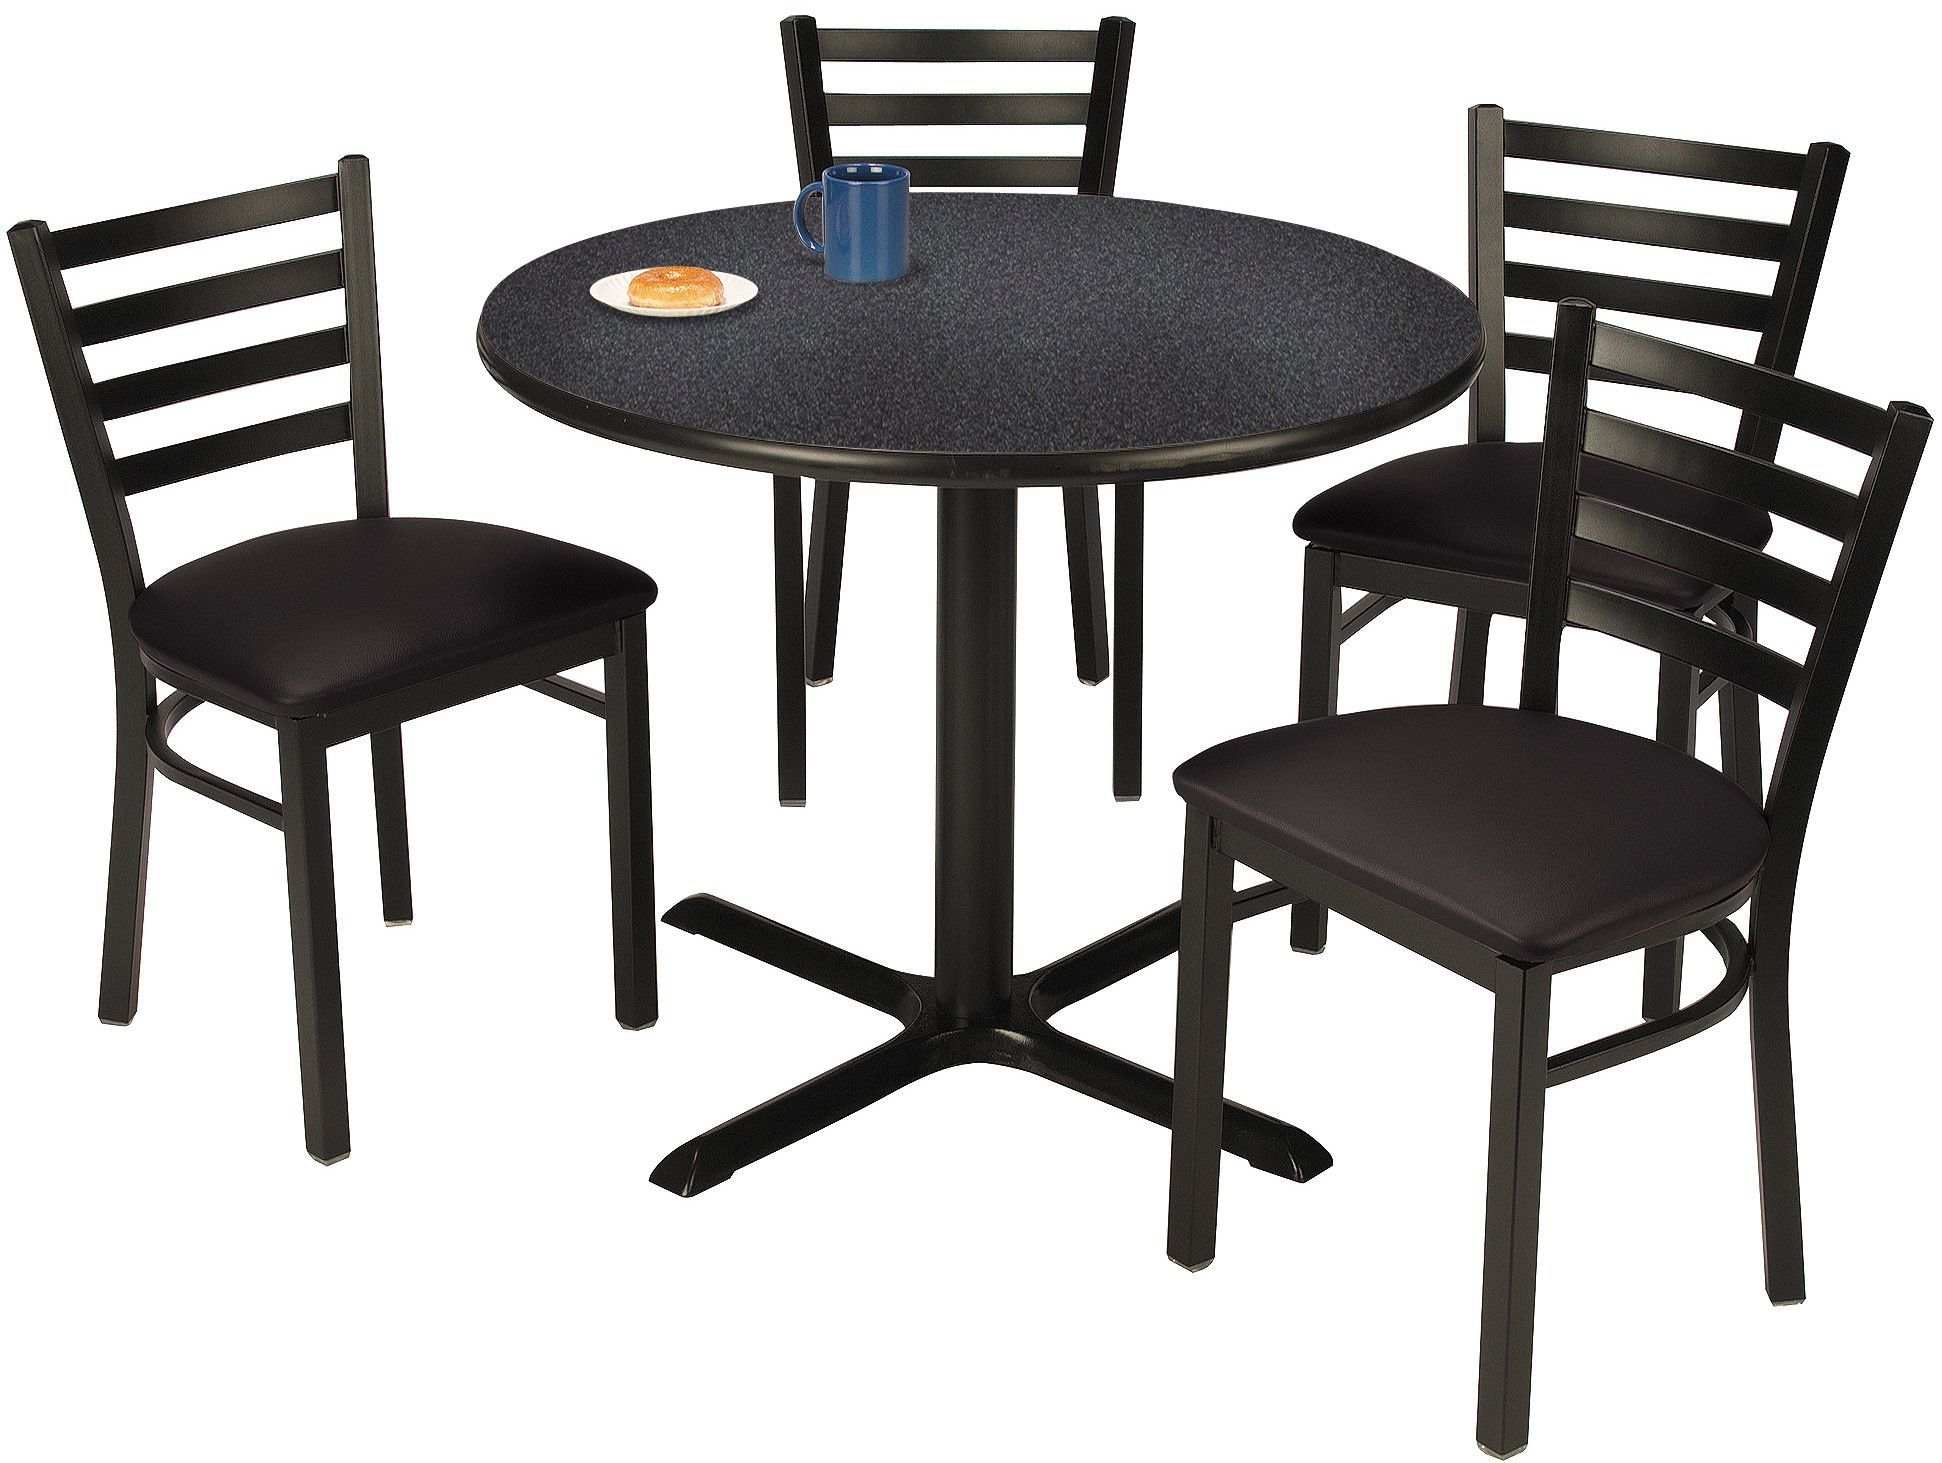 Round Cafeteria Table And Chair Set Cafeteria Table Cafe Chairs Table Chair Sets